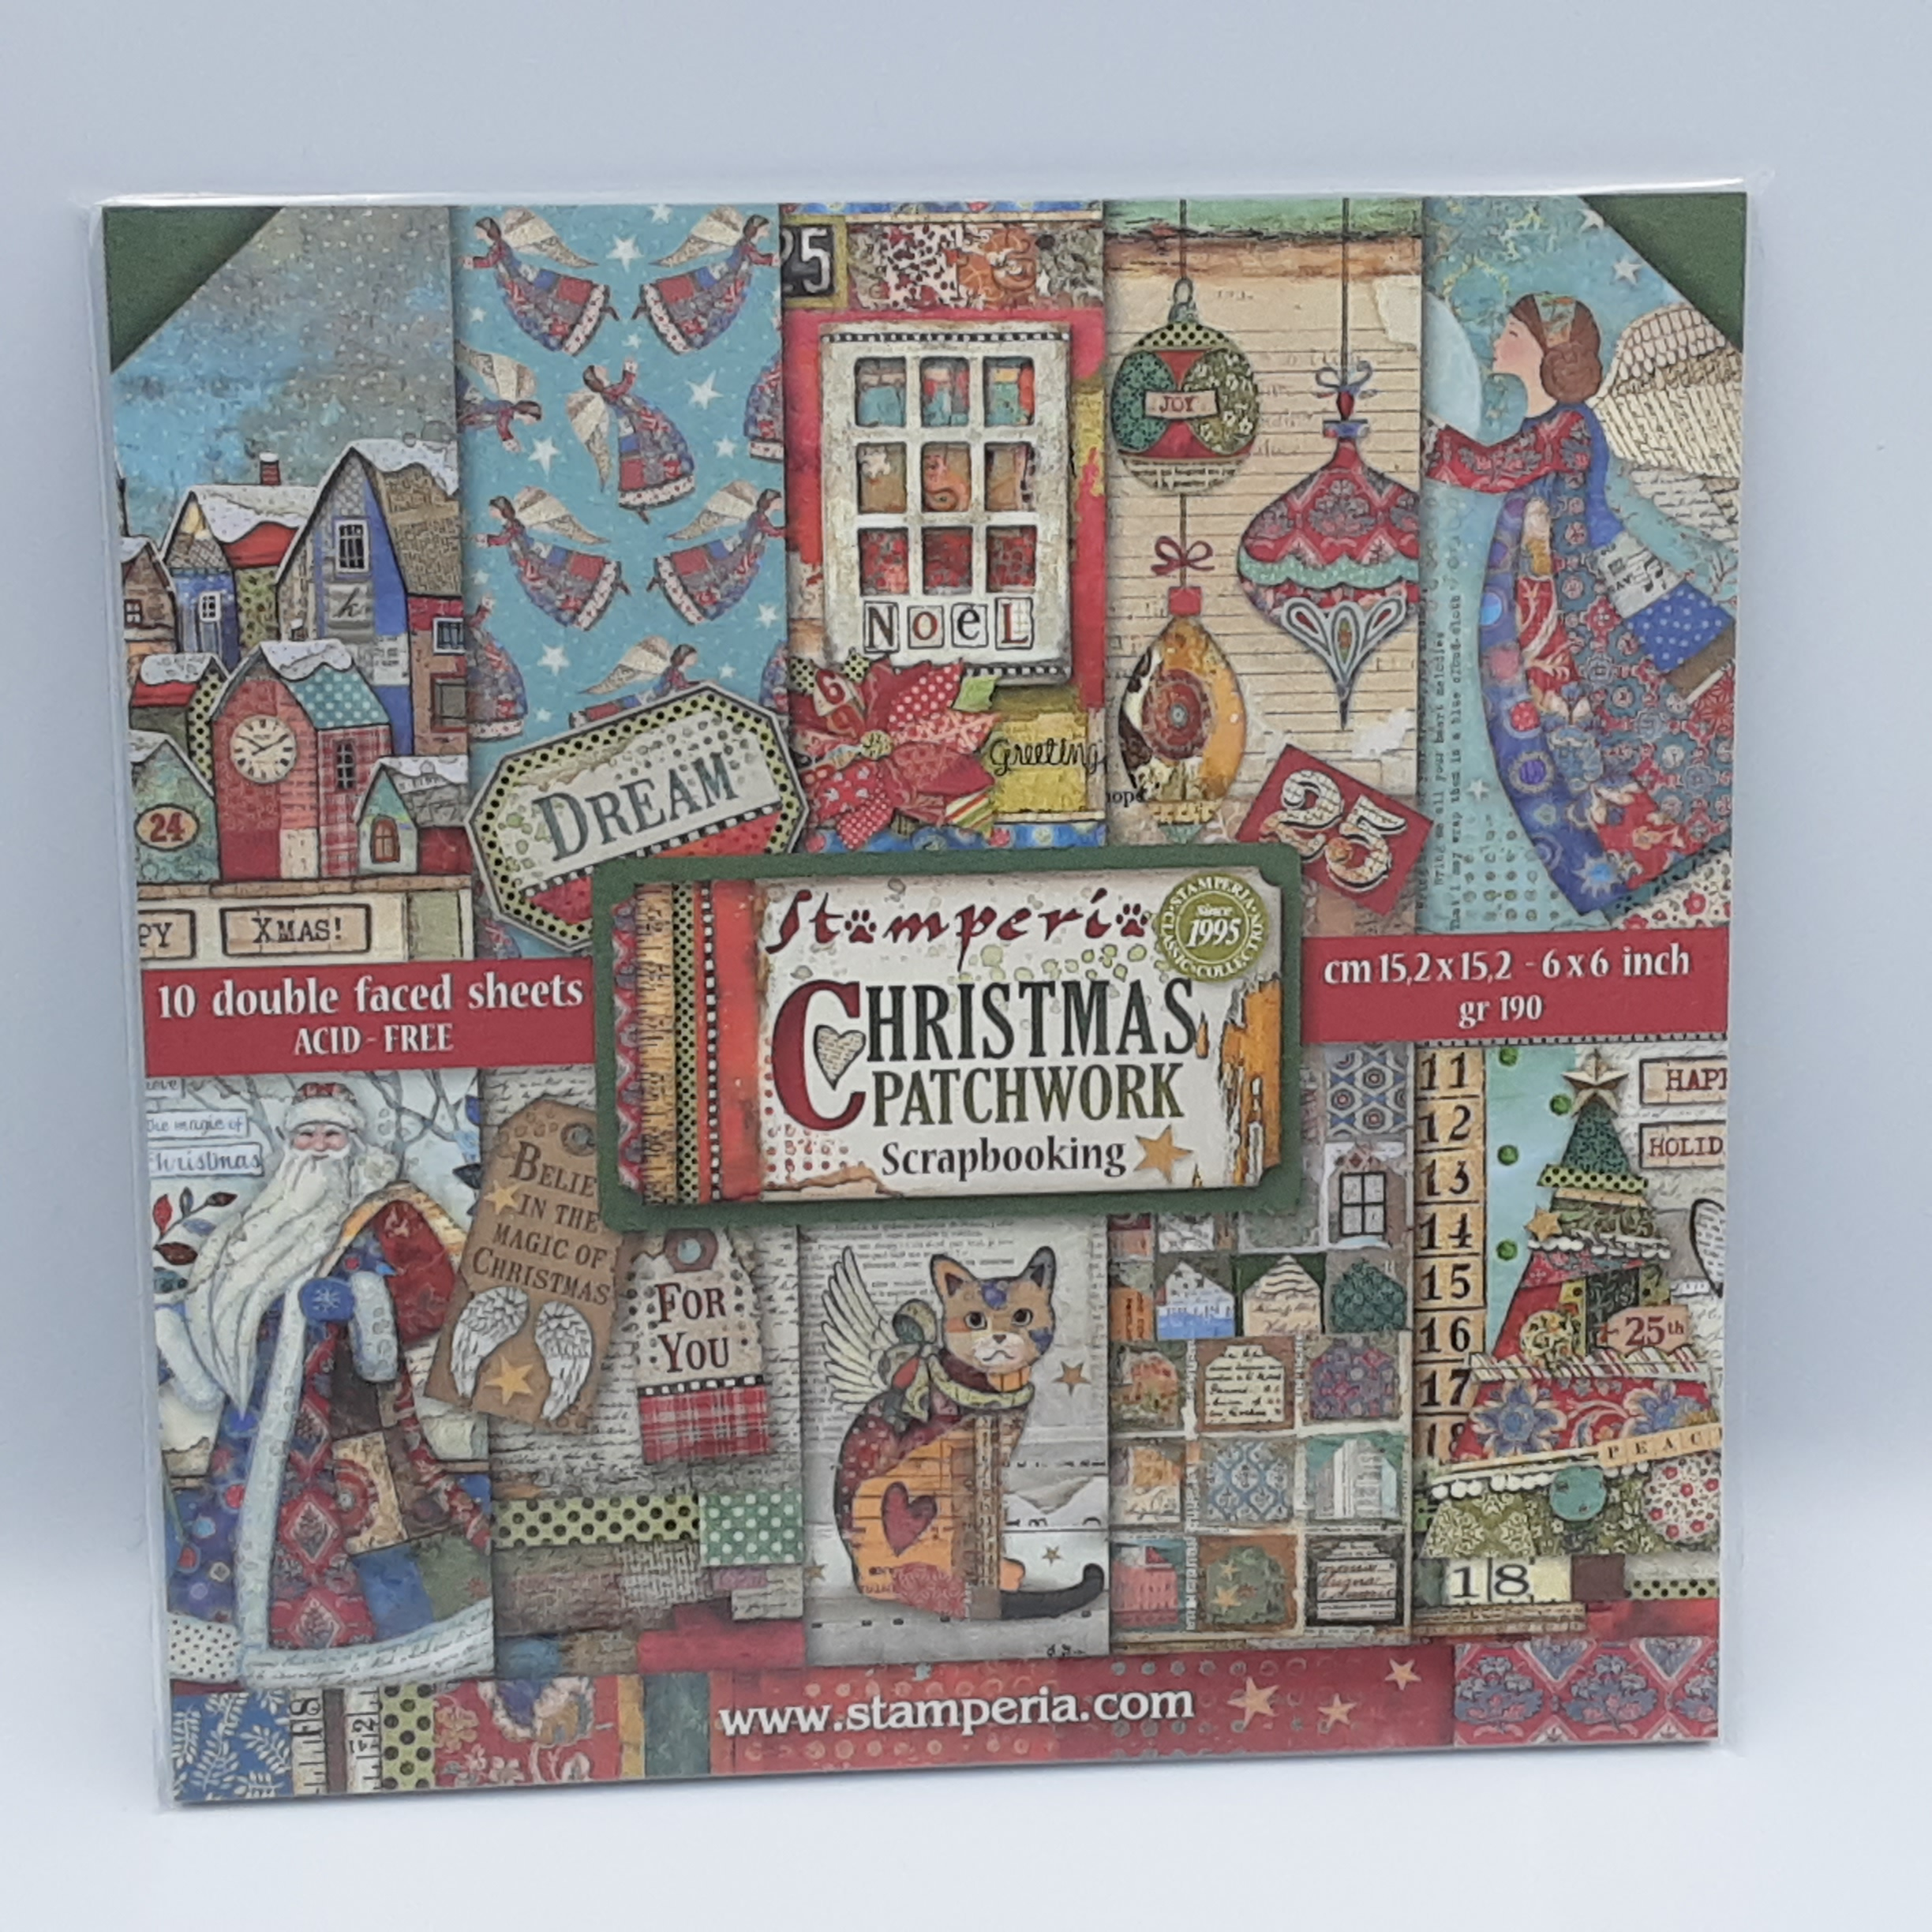 Christmas patchwork 6